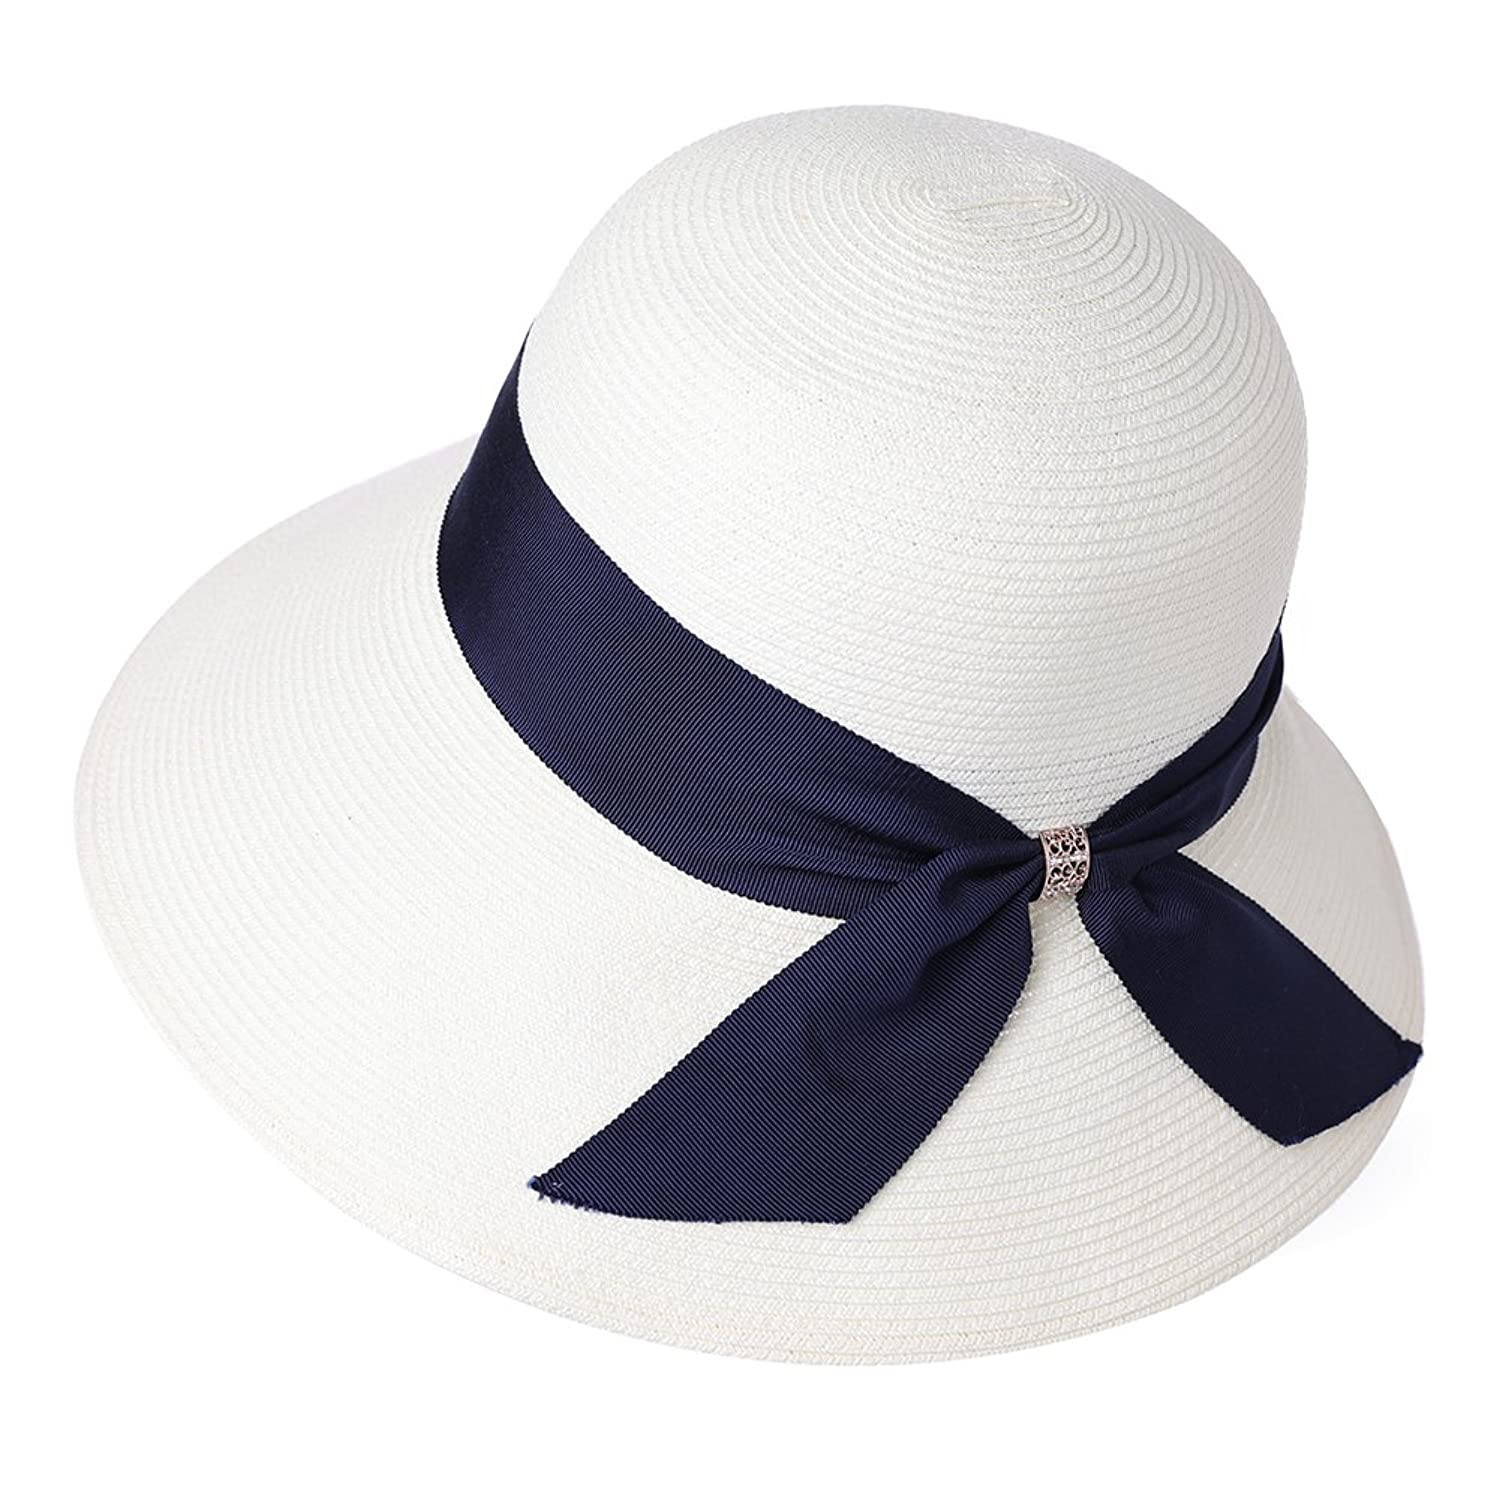 1920s Style Hats SiggiHat Packable UPF Straw Sunhat Women Summer Beach Wide Brim Fedora Travel Hat Bowknot $19.99 AT vintagedancer.com